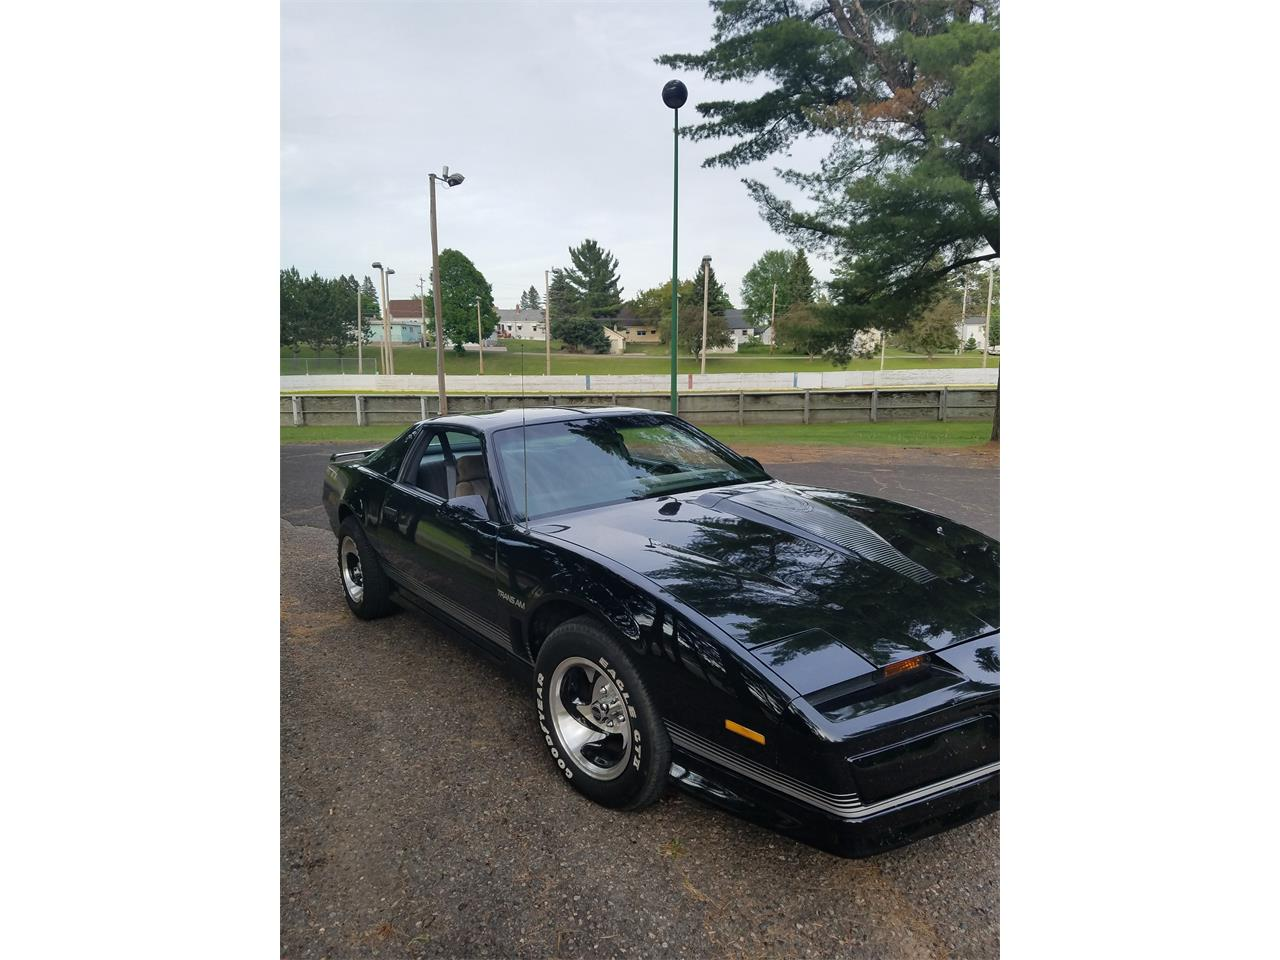 1984 pontiac firebird trans am for sale classiccars com cc 1242665 1984 pontiac firebird trans am for sale